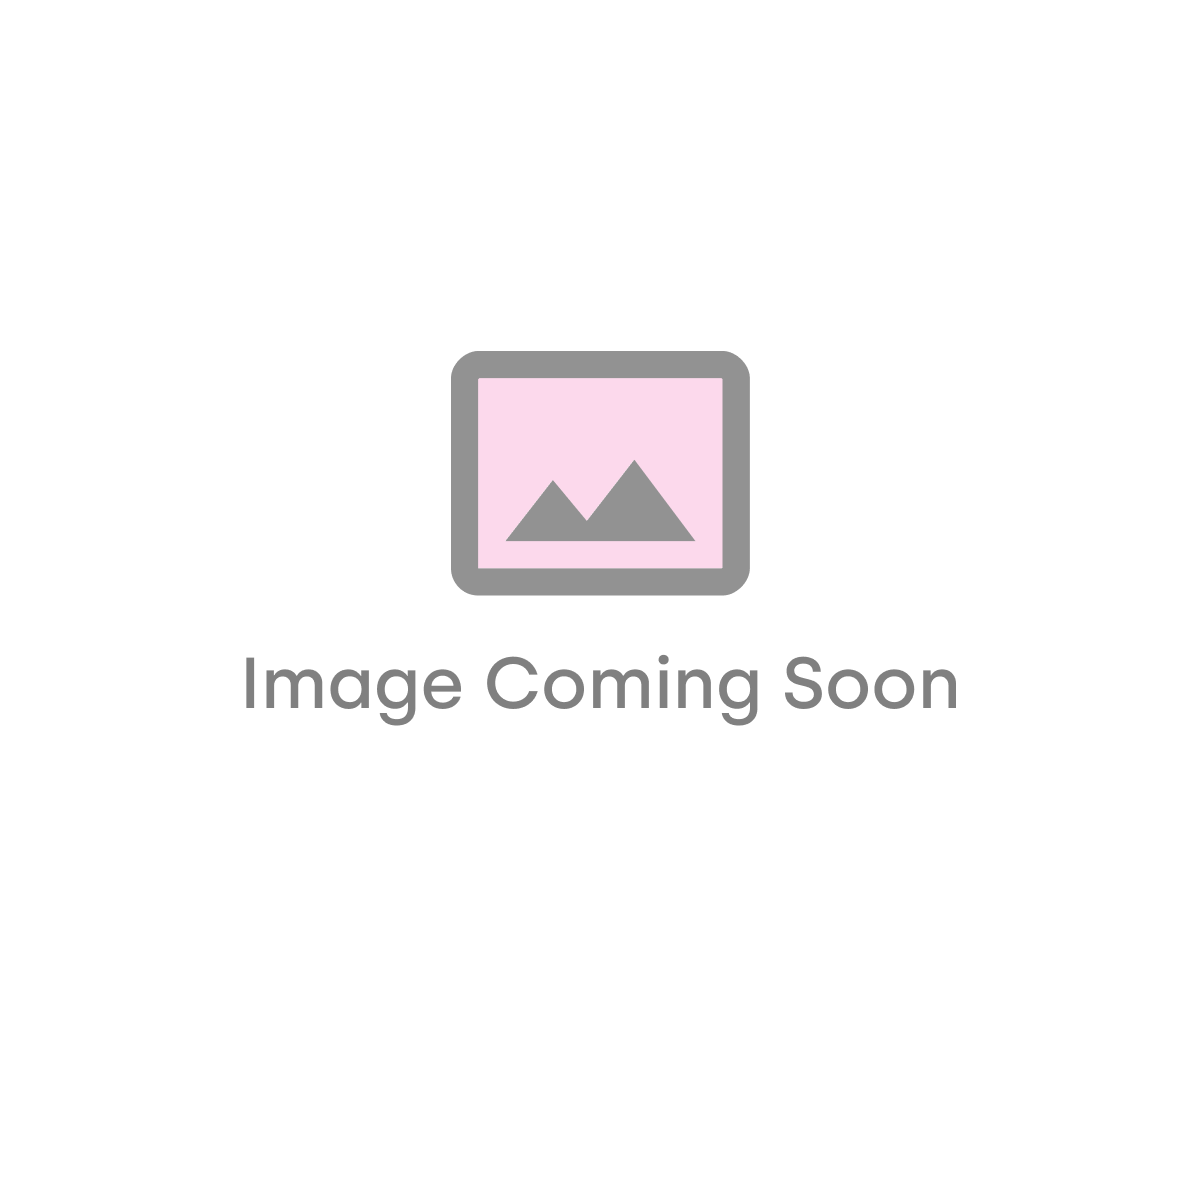 ER Square Wall Mounted LED Makeup Mirror (14509)